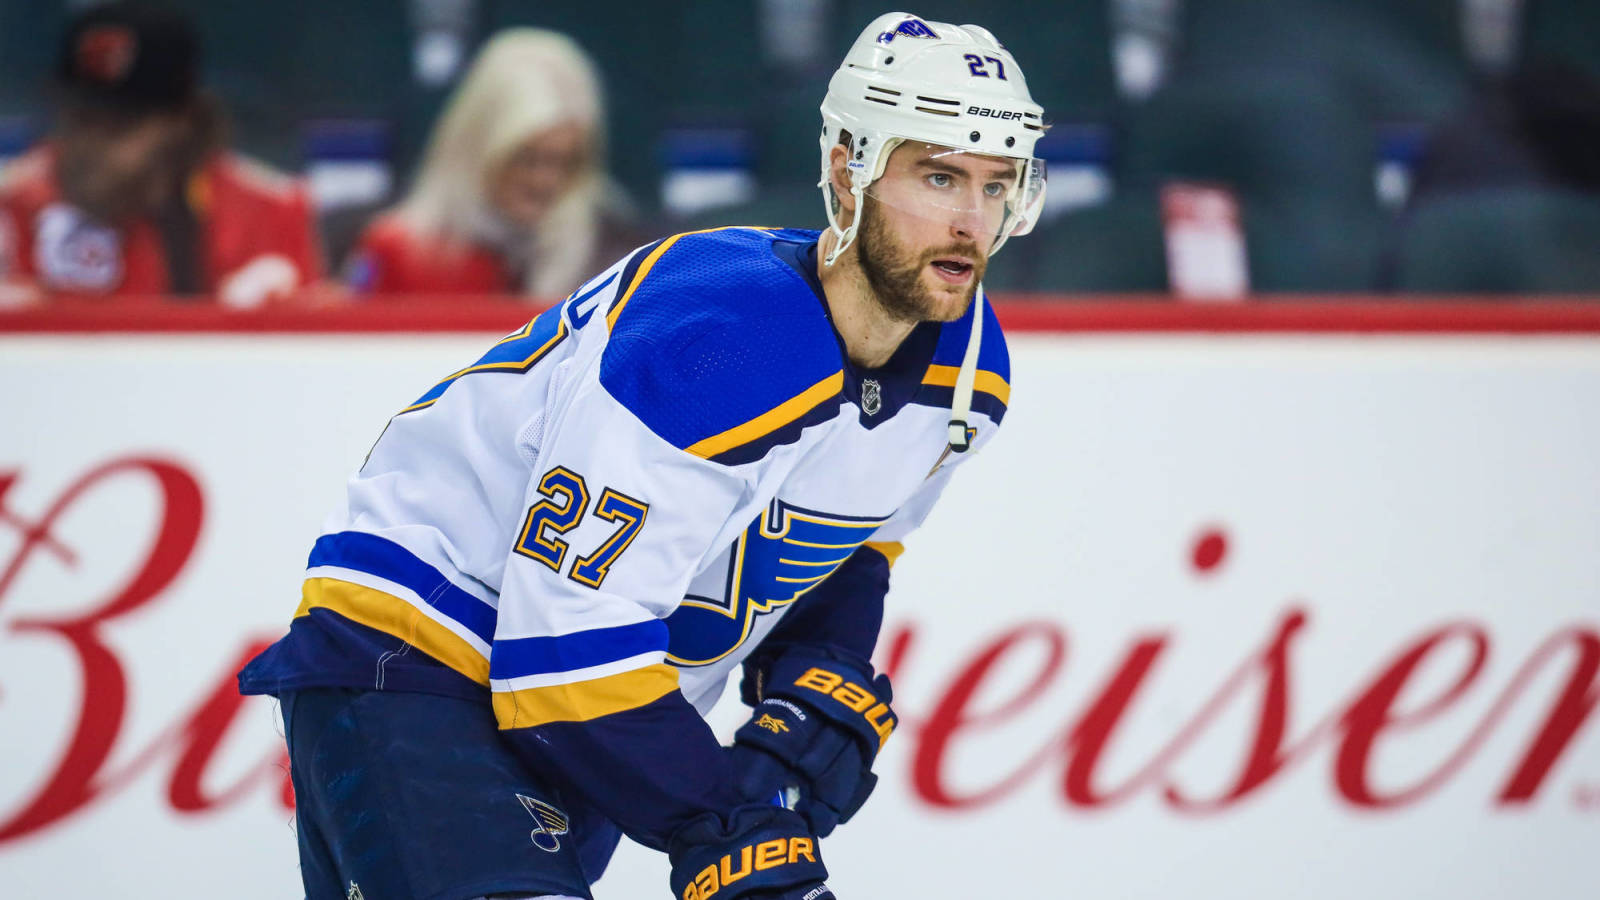 Alex Pietrangelo Lack Of Progress On Contract With Blues Disappointing Yardbarker